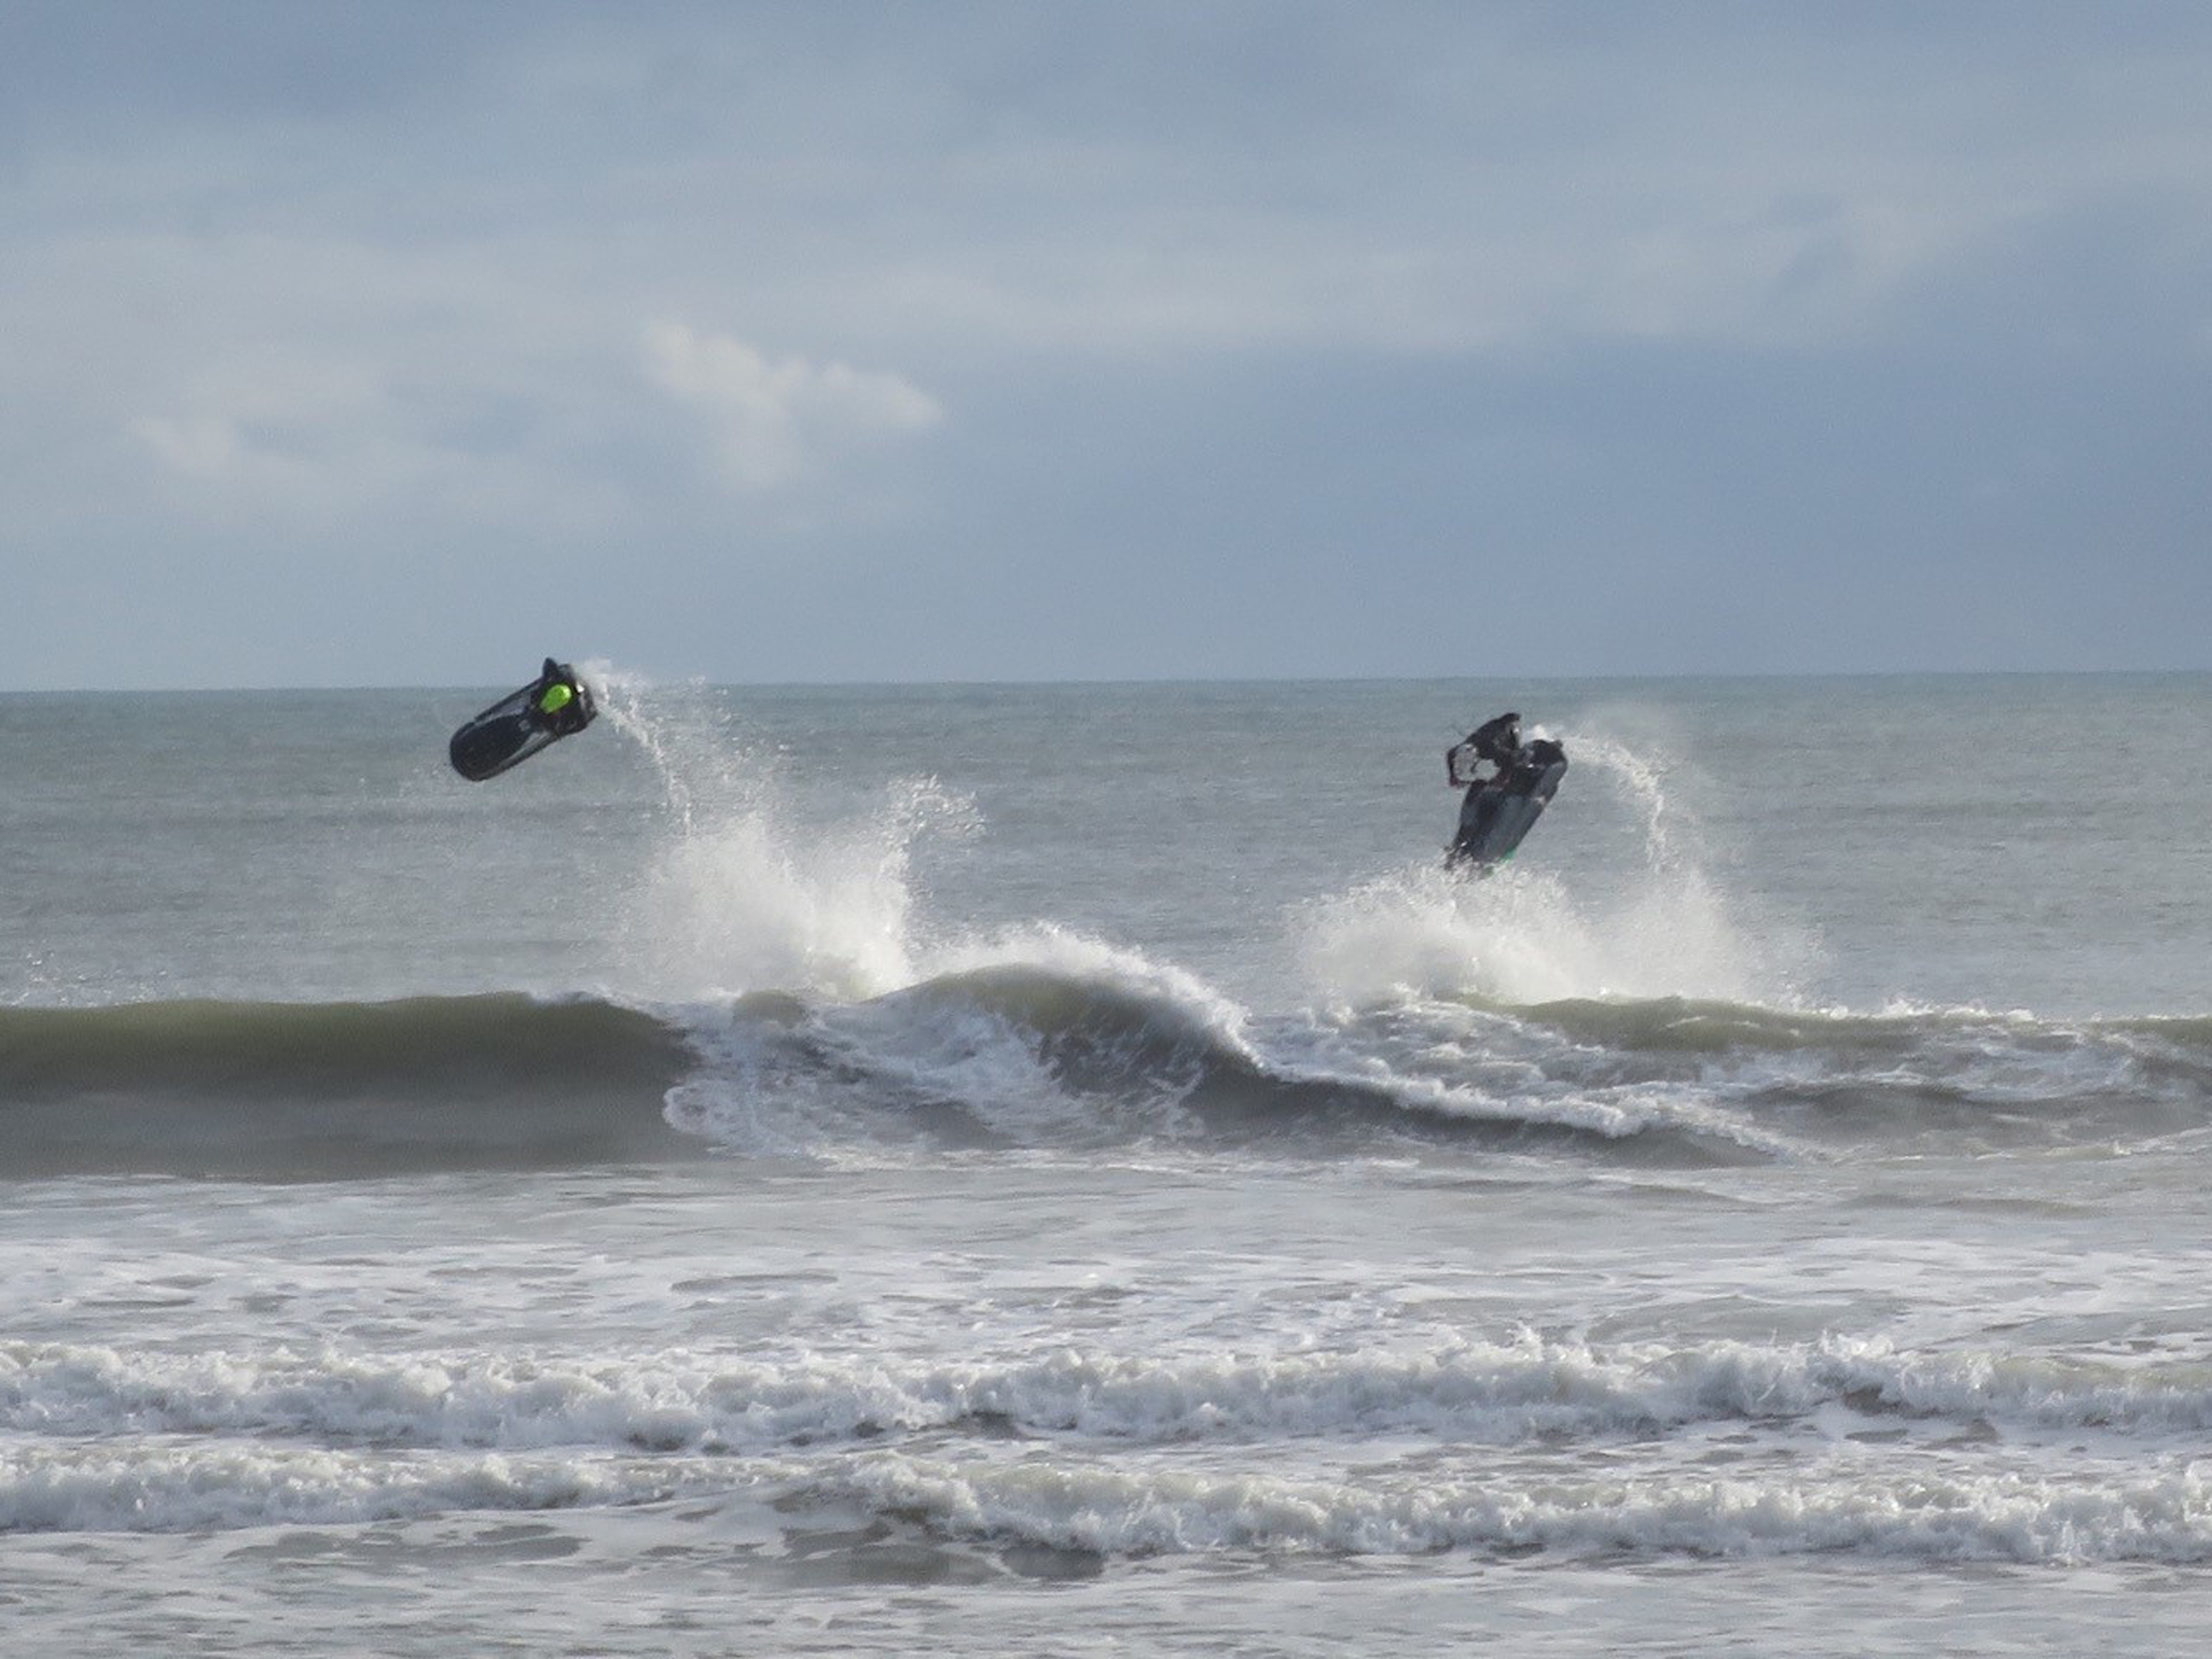 Picture of the Day: Jetskiers playing in the waves at Bournemouth